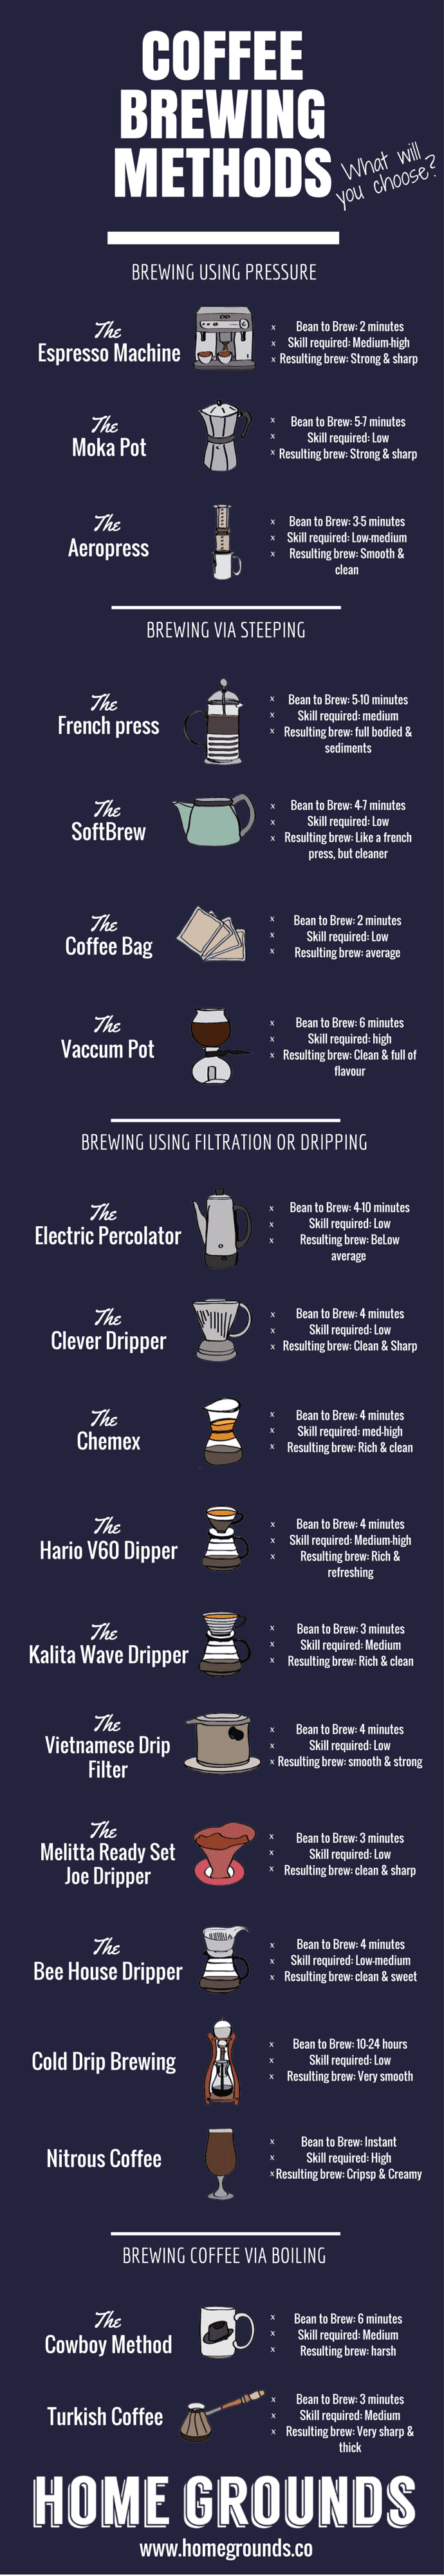 Coffee Brewing Methods Infographic